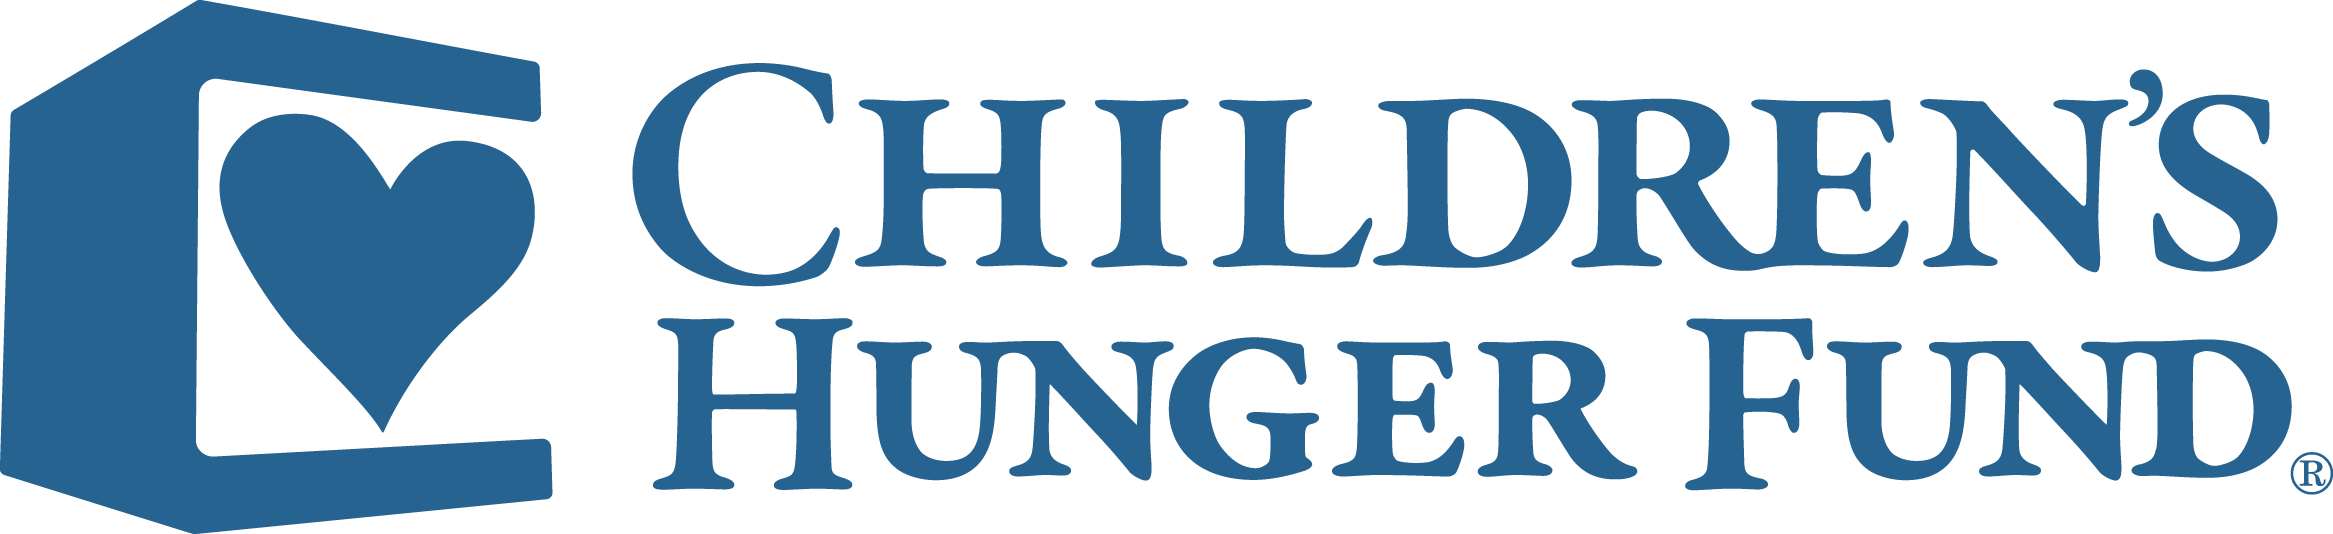 Children's Hunger Fund (1).png